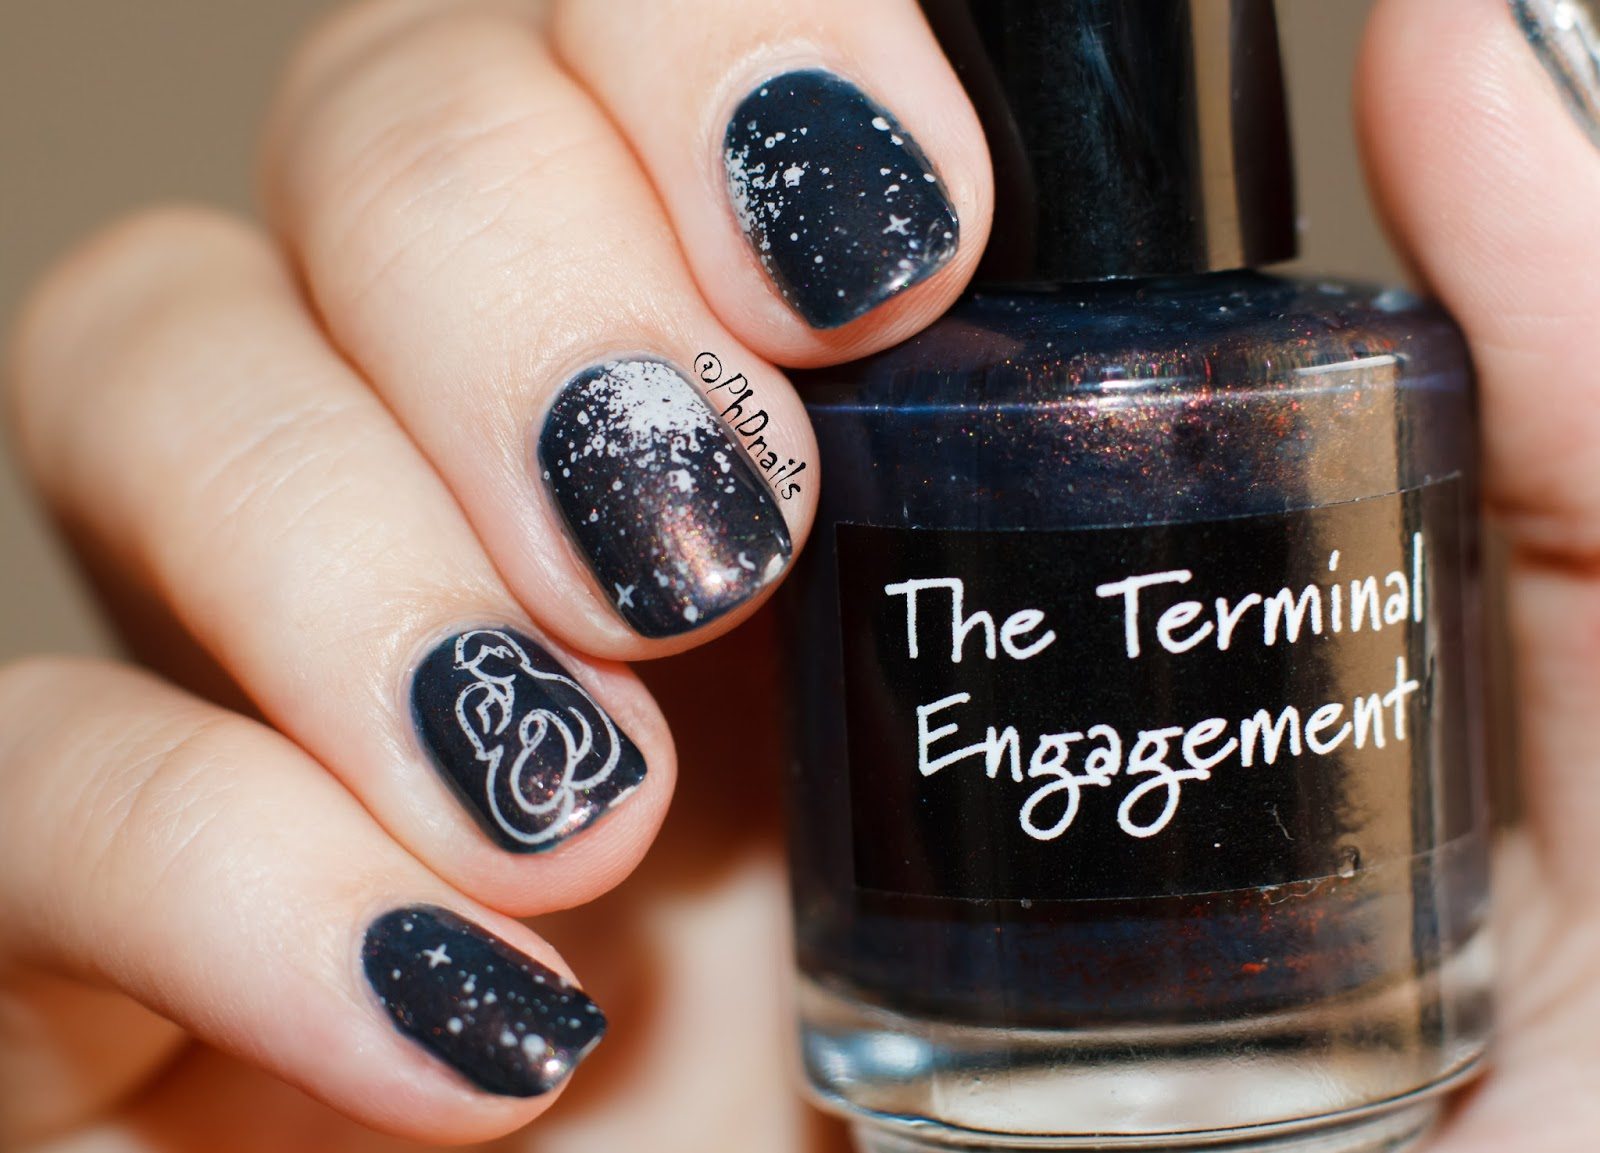 PhD nails: HPB presents: Crows toes Terminal Engagement with starry ...